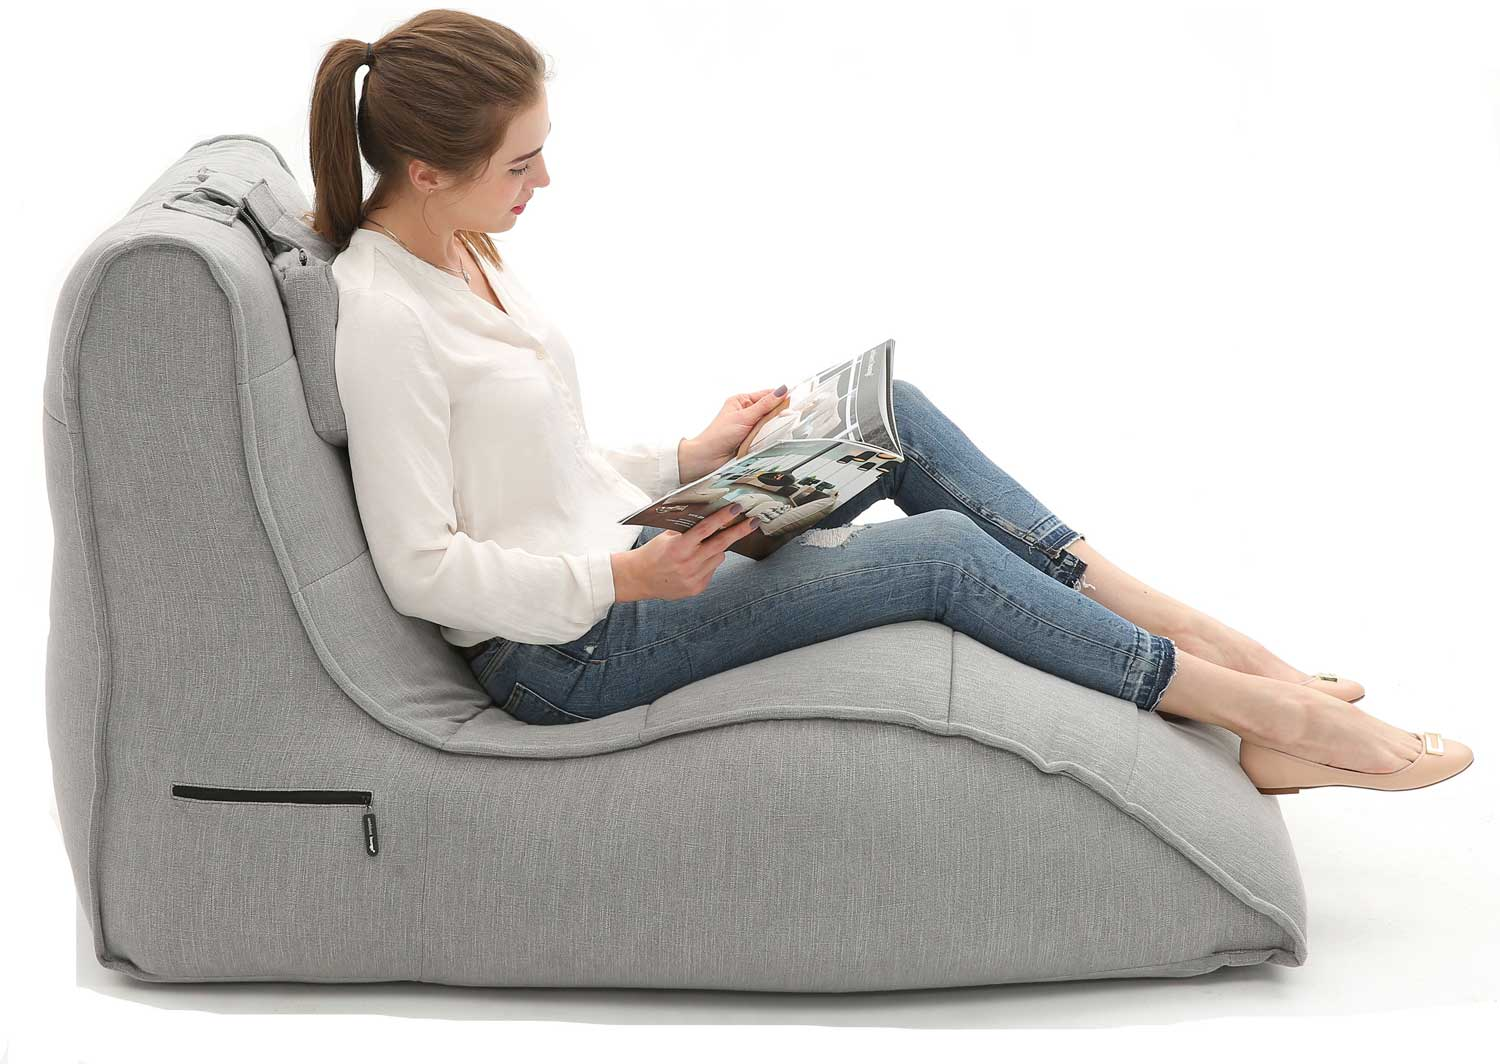 Avatar Lounger Keystone Grey